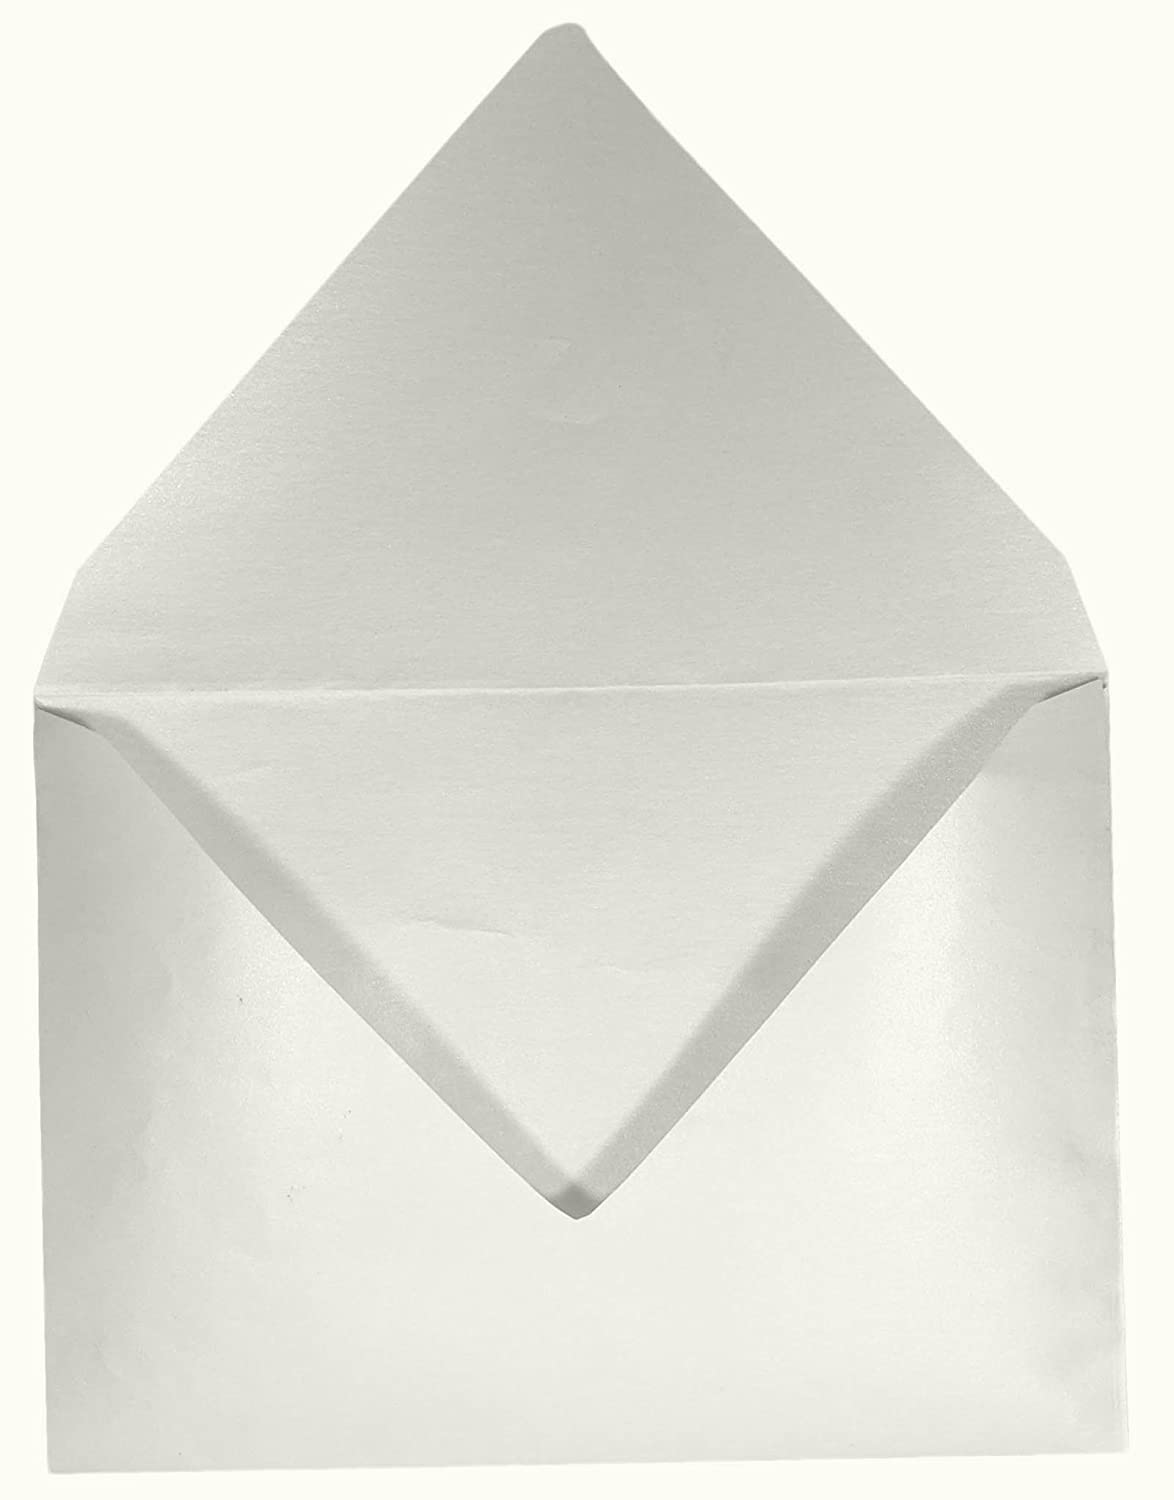 a7 size 25 x wedding invite envelopes euro v flap 80lbs 5 1 4 x 7